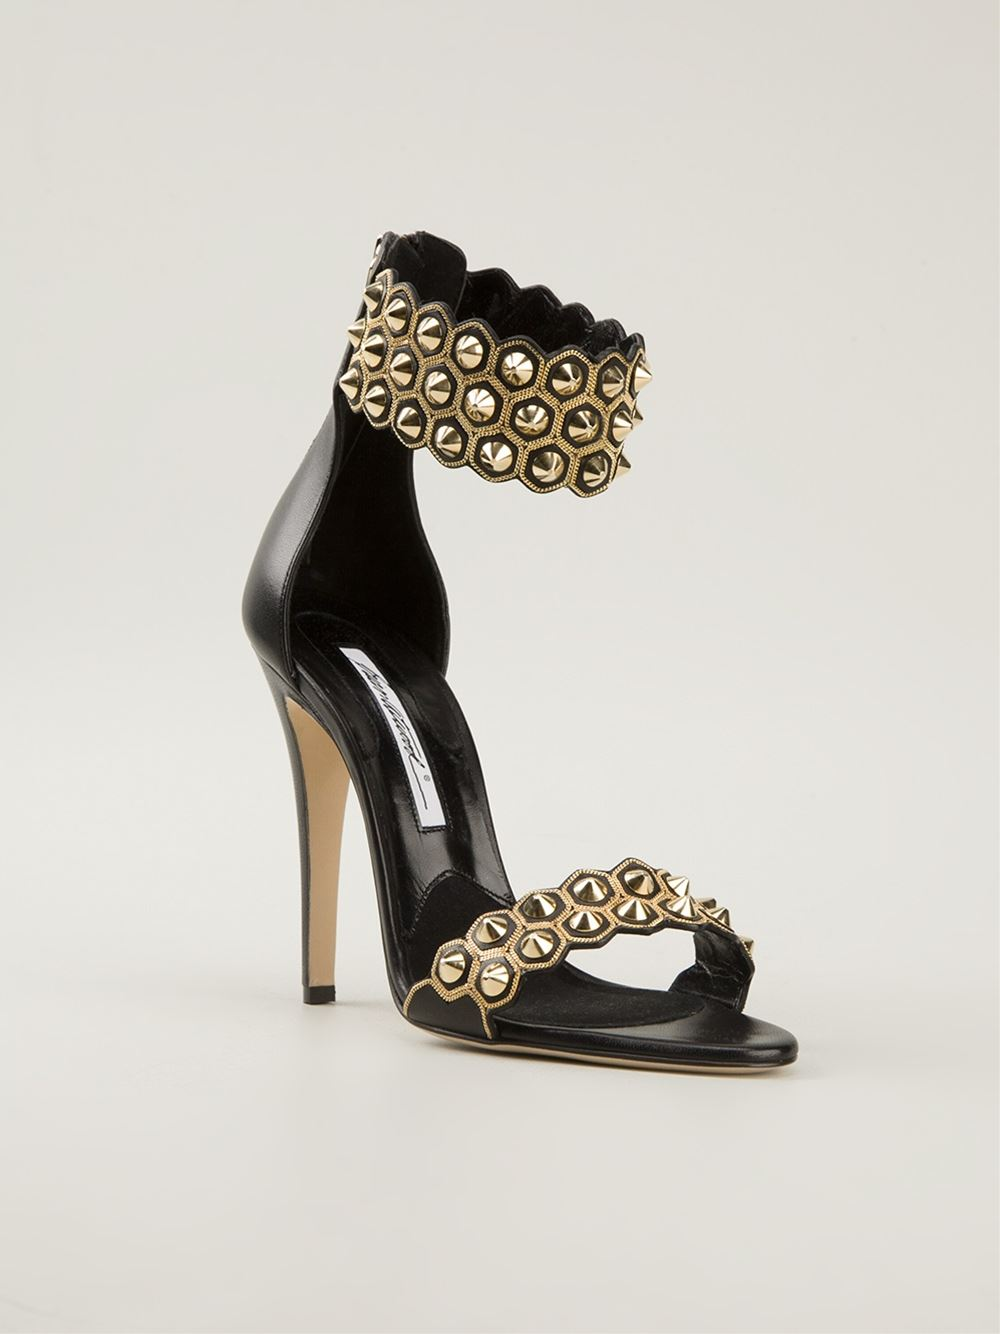 Brian atwood 'abell' shoes